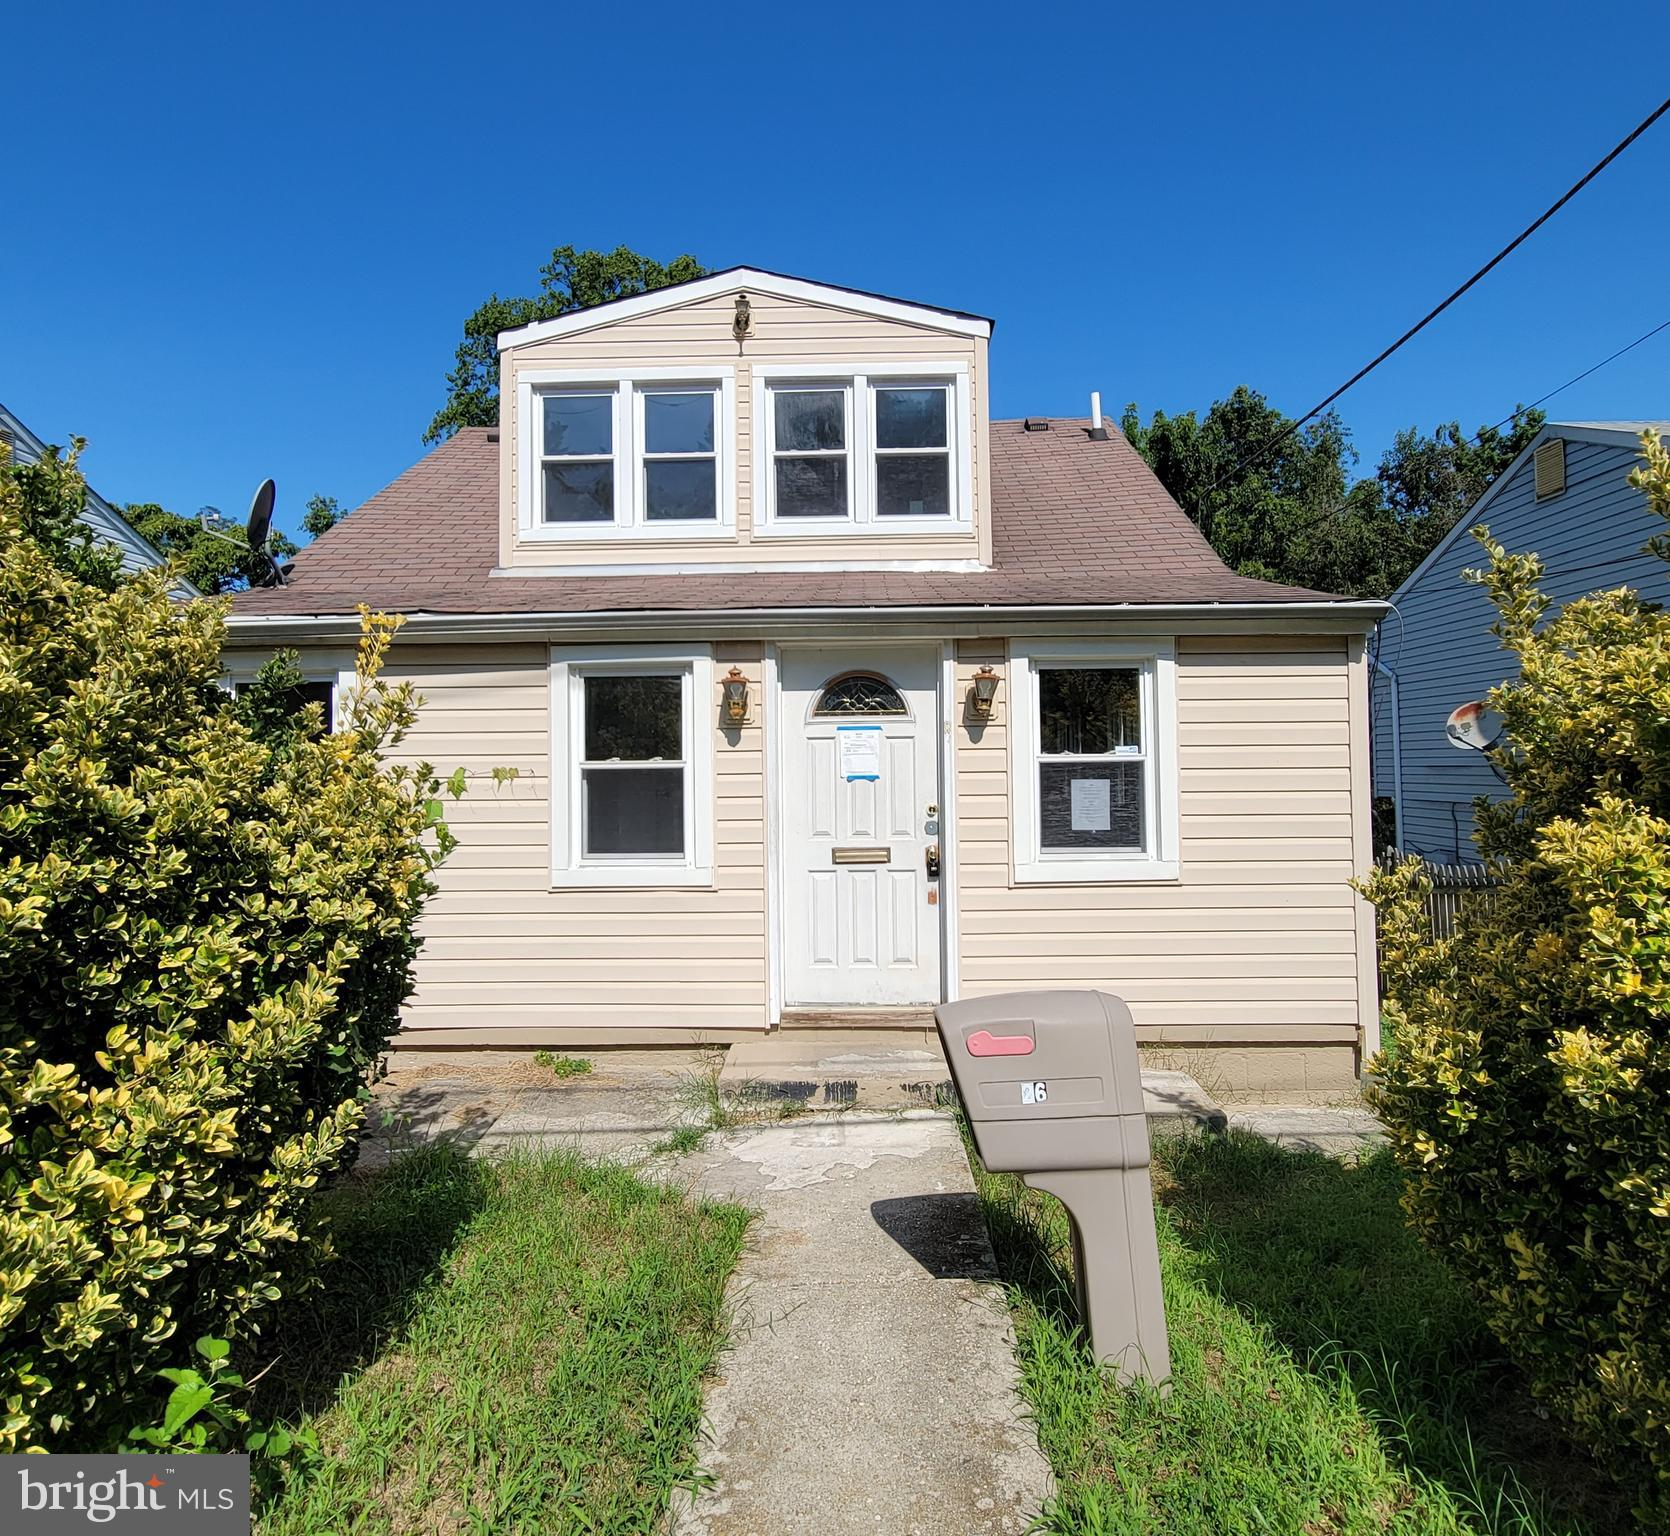 5726 Bugler St, Capitol Heights, MD, 20743